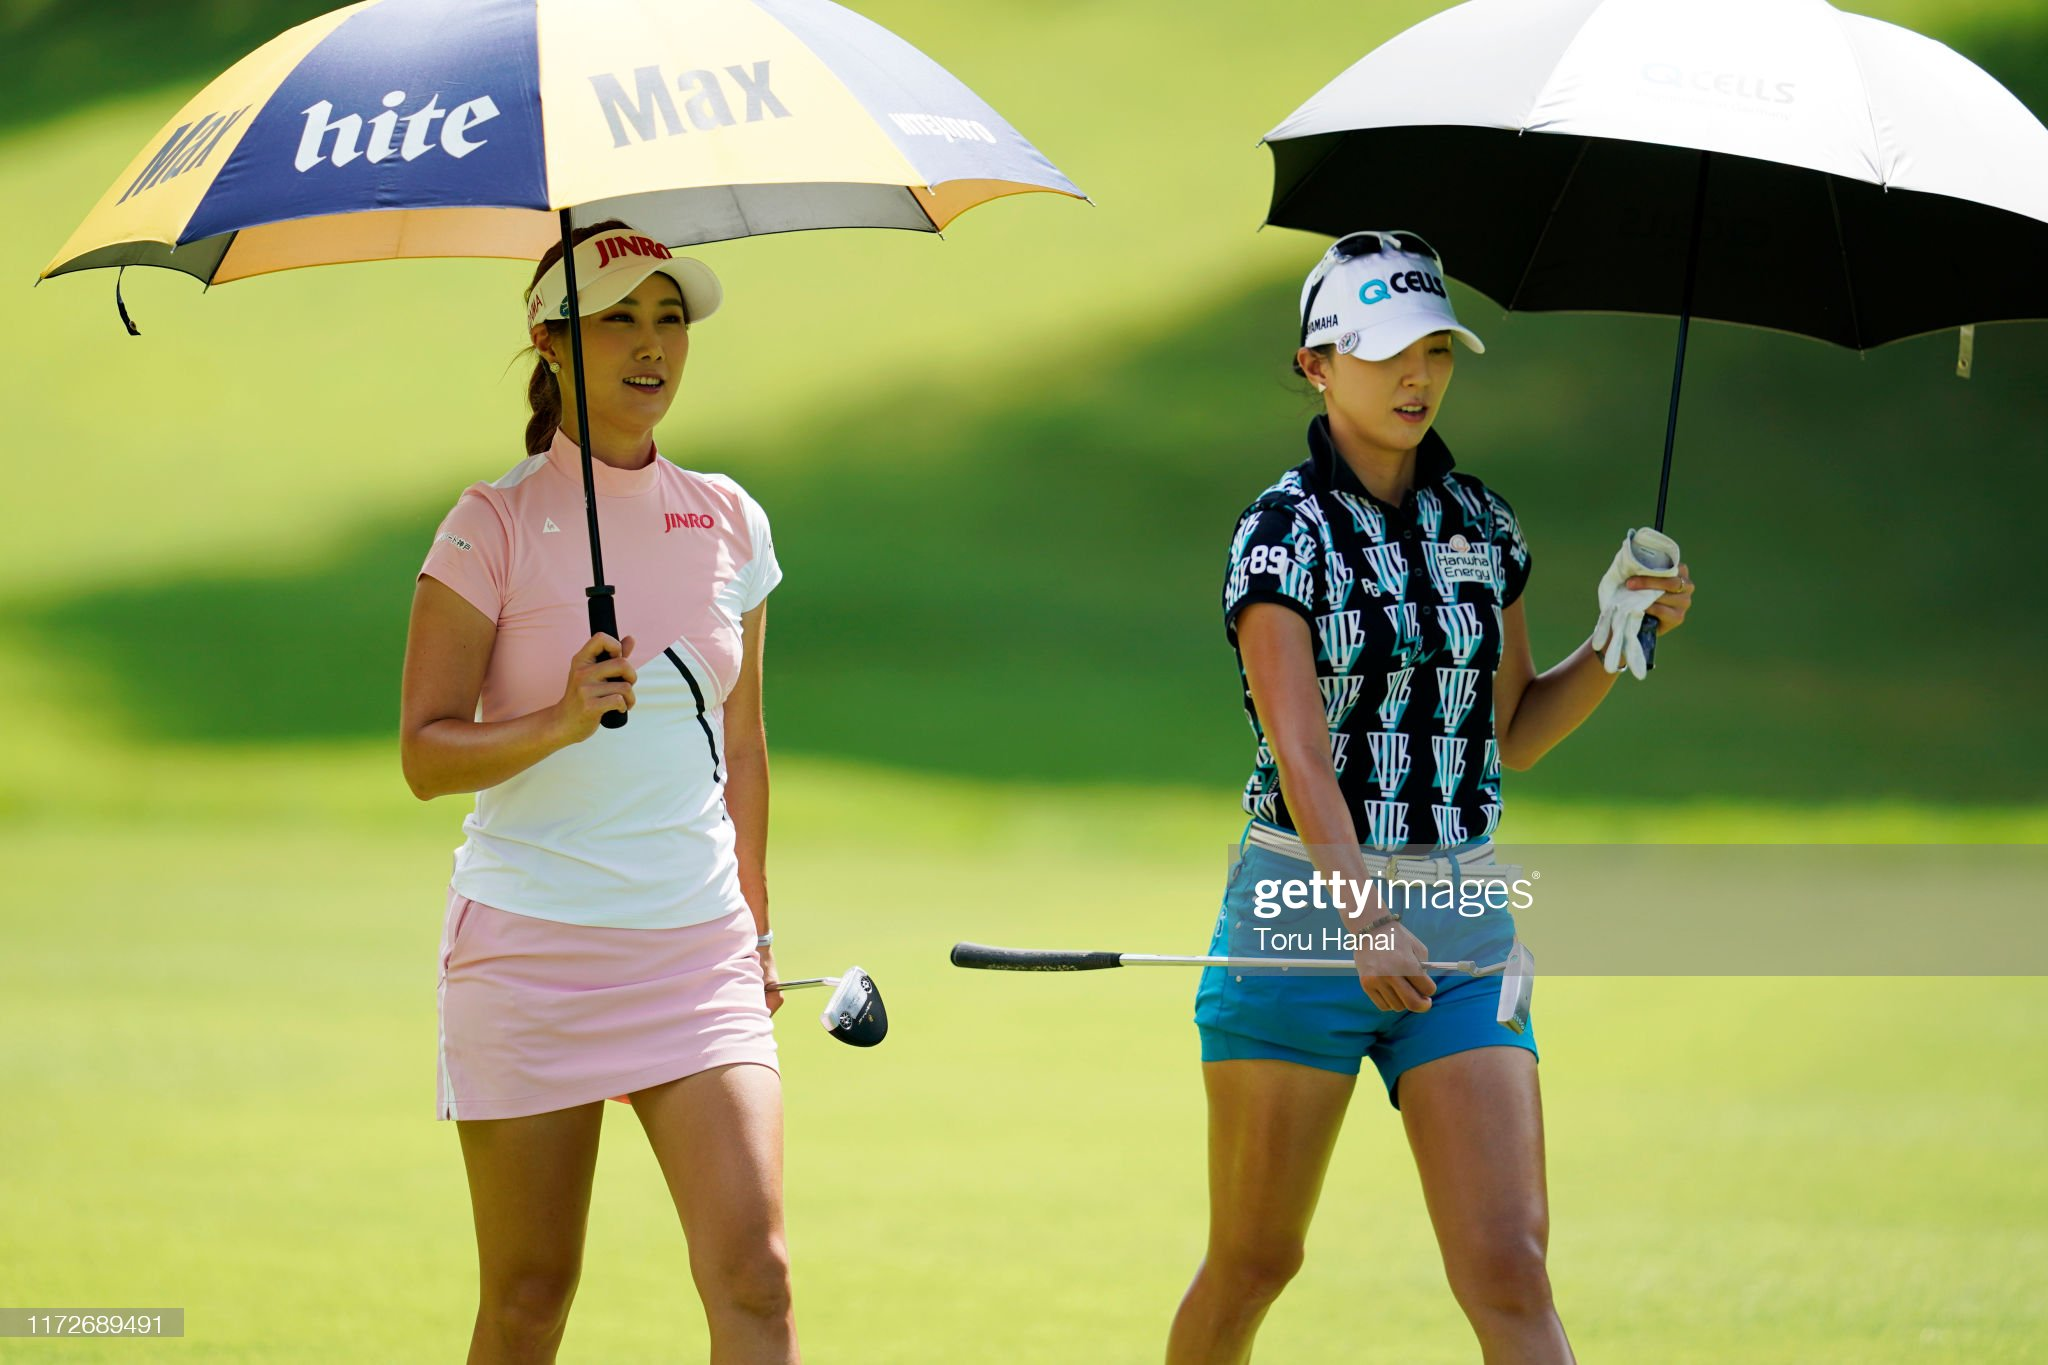 https://media.gettyimages.com/photos/haneul-kim-and-chaeyoung-yoon-of-south-korea-talk-on-the-10th-hole-picture-id1172689491?s=2048x2048